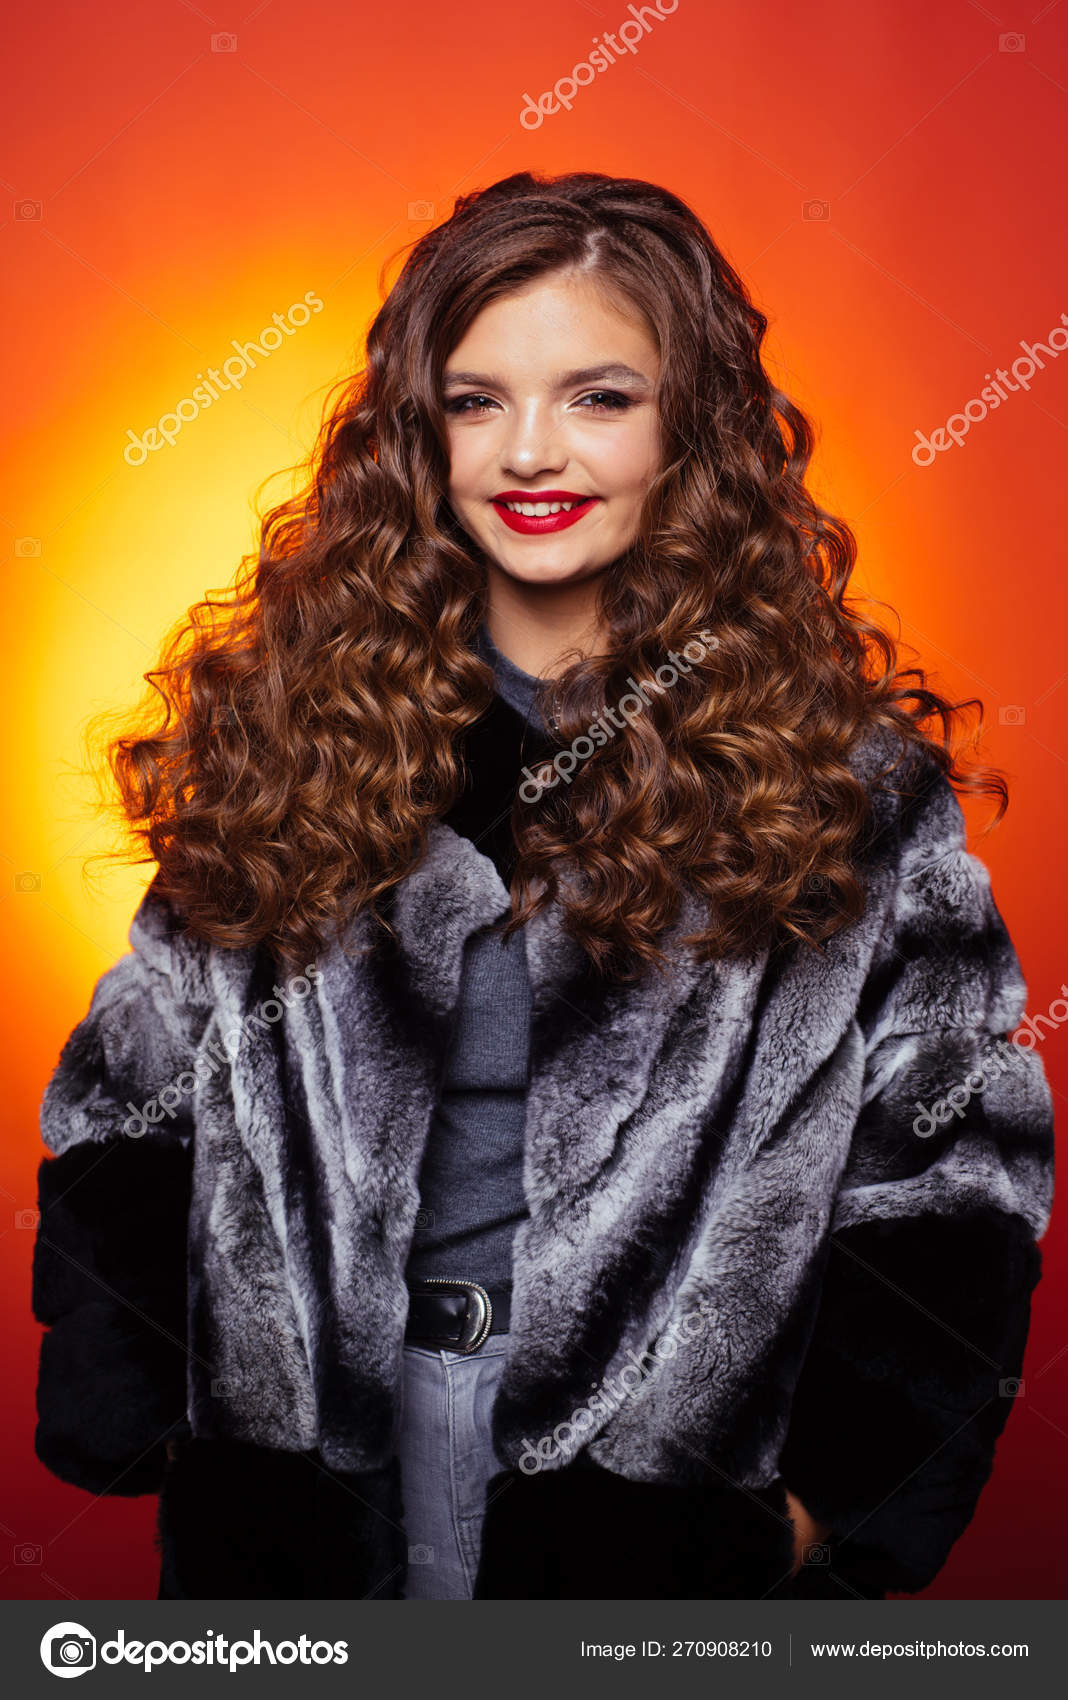 Curly Headed Teenager Teenage Girl With Stylish Wavy Hairstyle Pretty Girl With Curly Hairstyle Young Woman With Long Locks Of Hair Healthy Hair Care Habits Hair Styling In Beauty Salon Stock